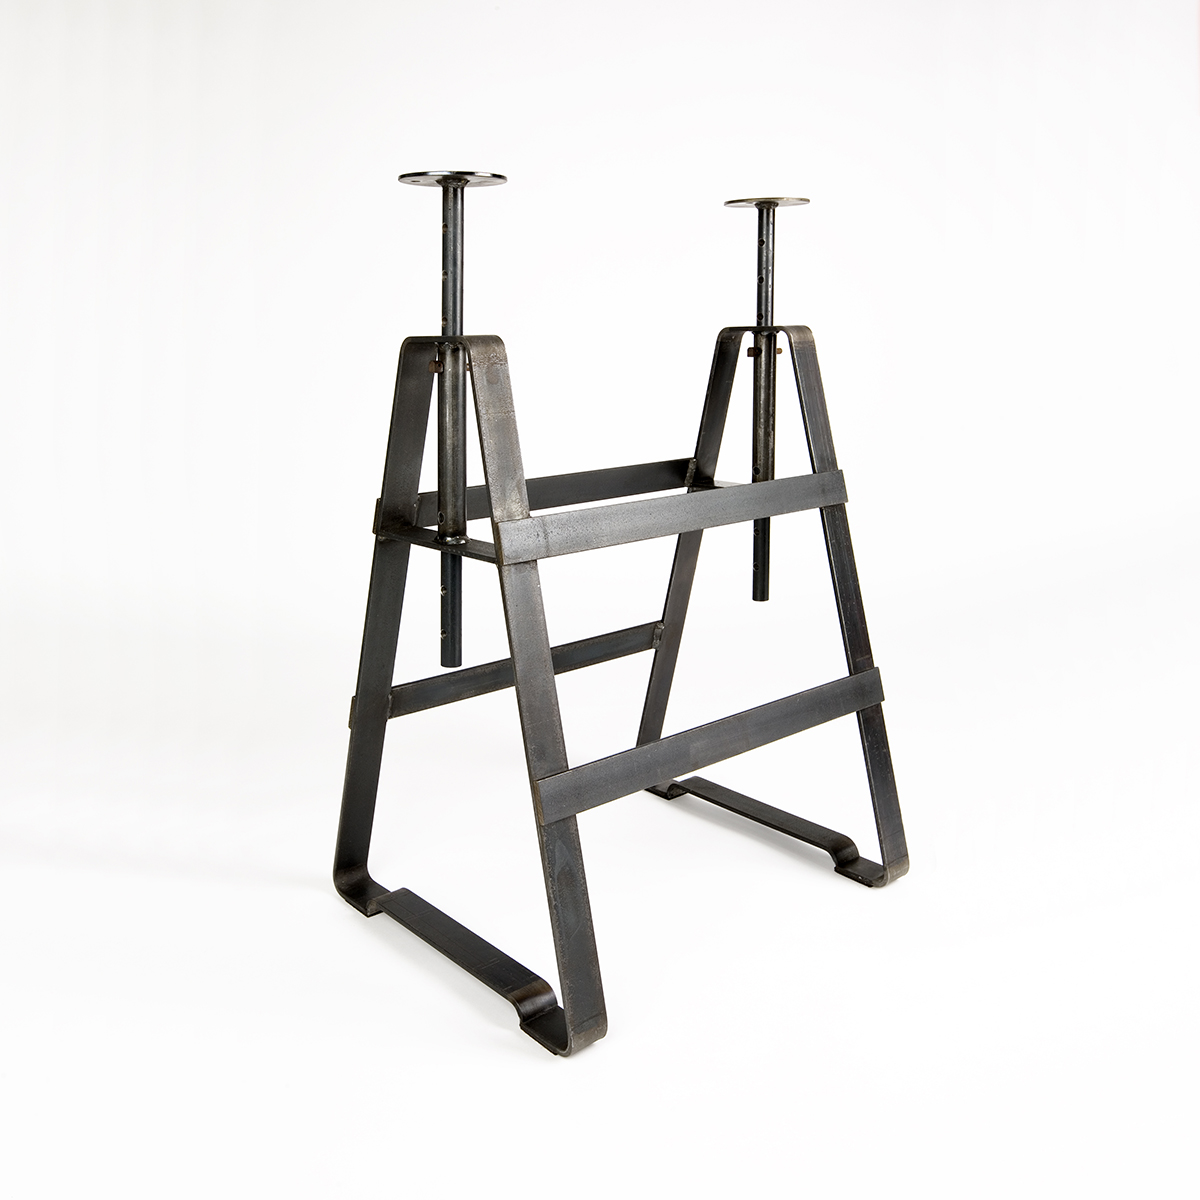 A height adjustable trestle made from oiled crude steel. It is applicable with several shelves and slabs. The same variable as Affe but powder-coated plays Lackaffe with the image of solid steel furniture.